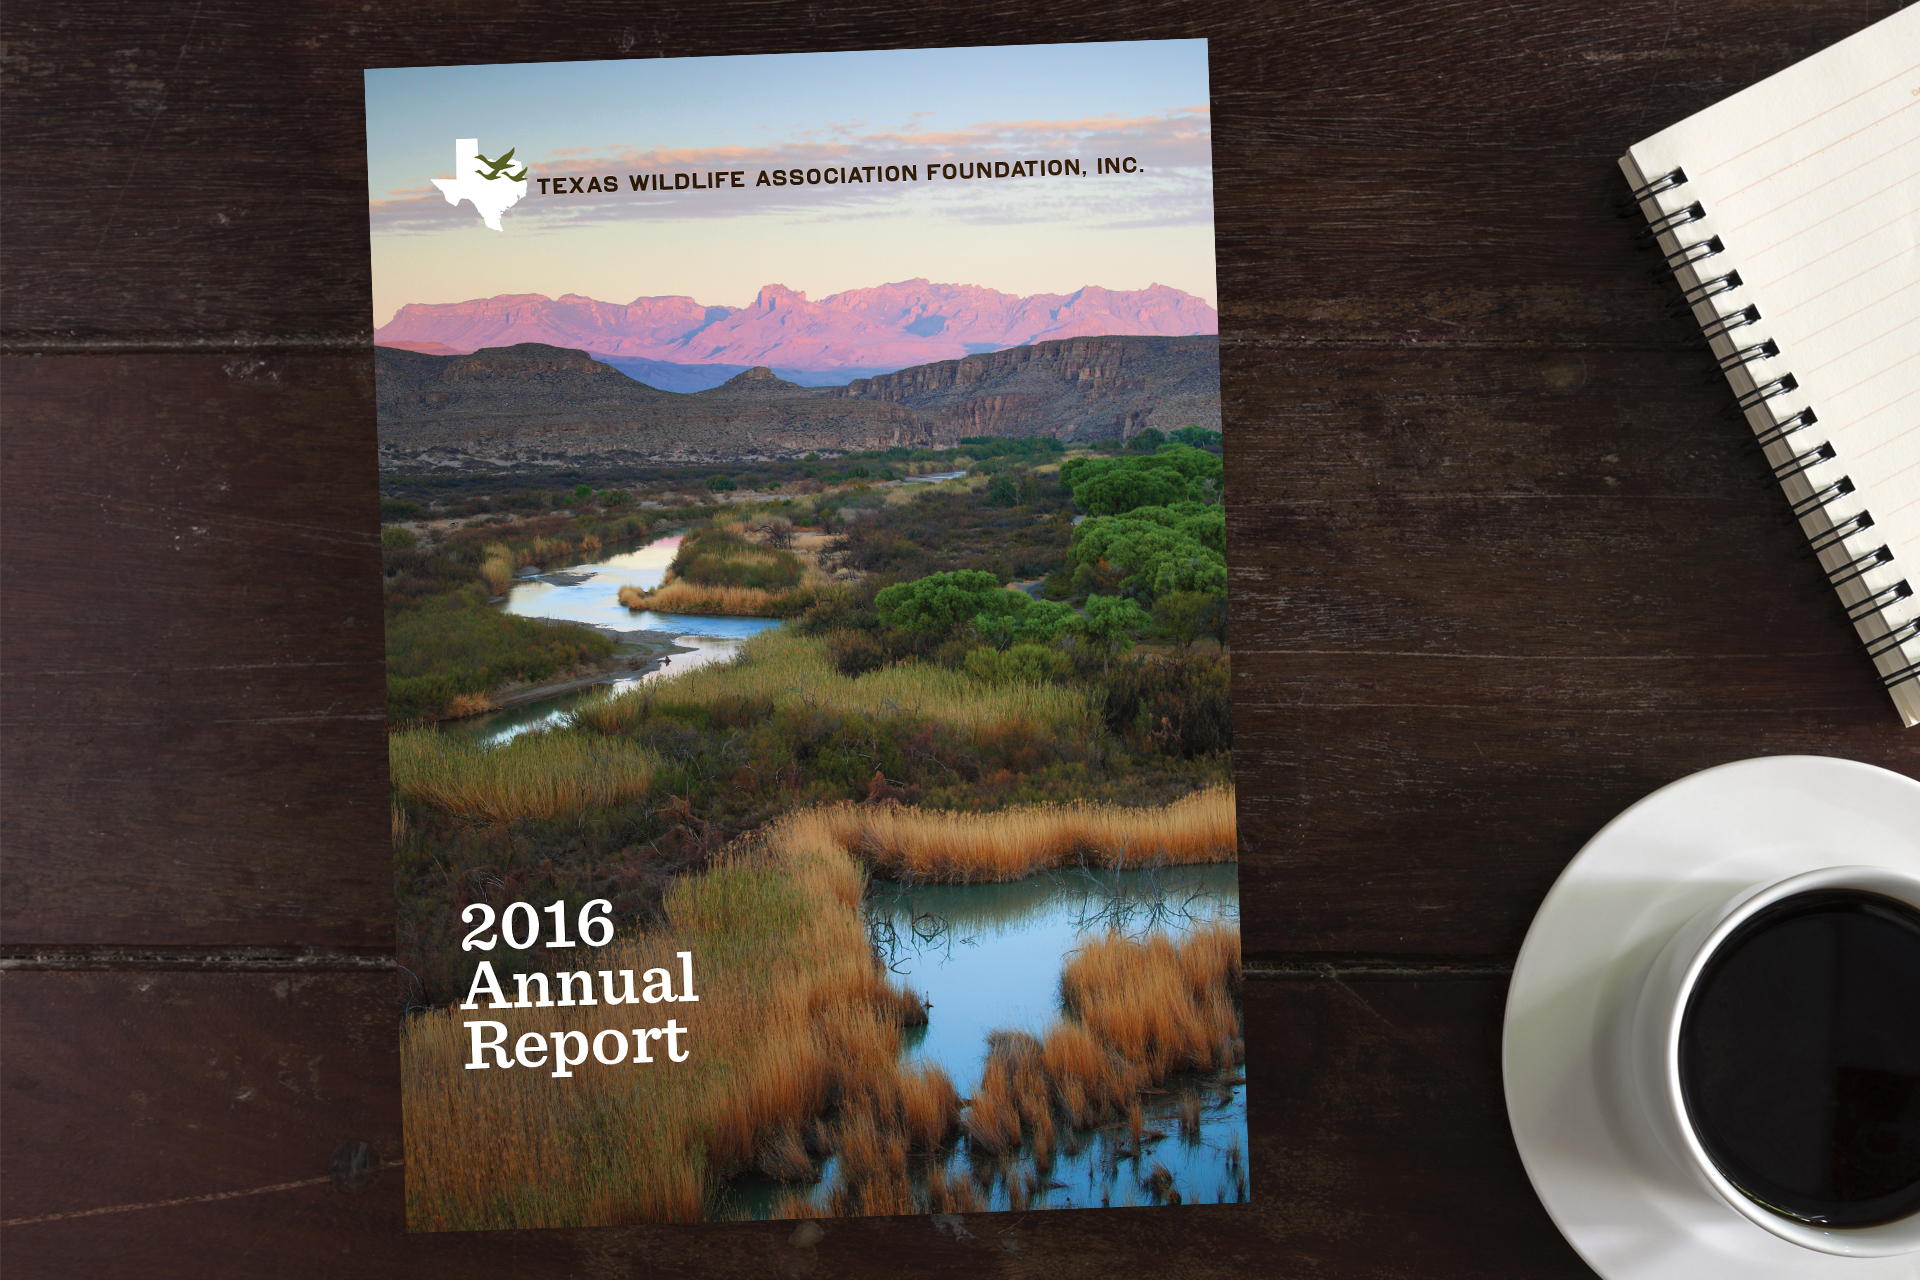 Texas Wildlife Association Foundation 2016 Annual Report